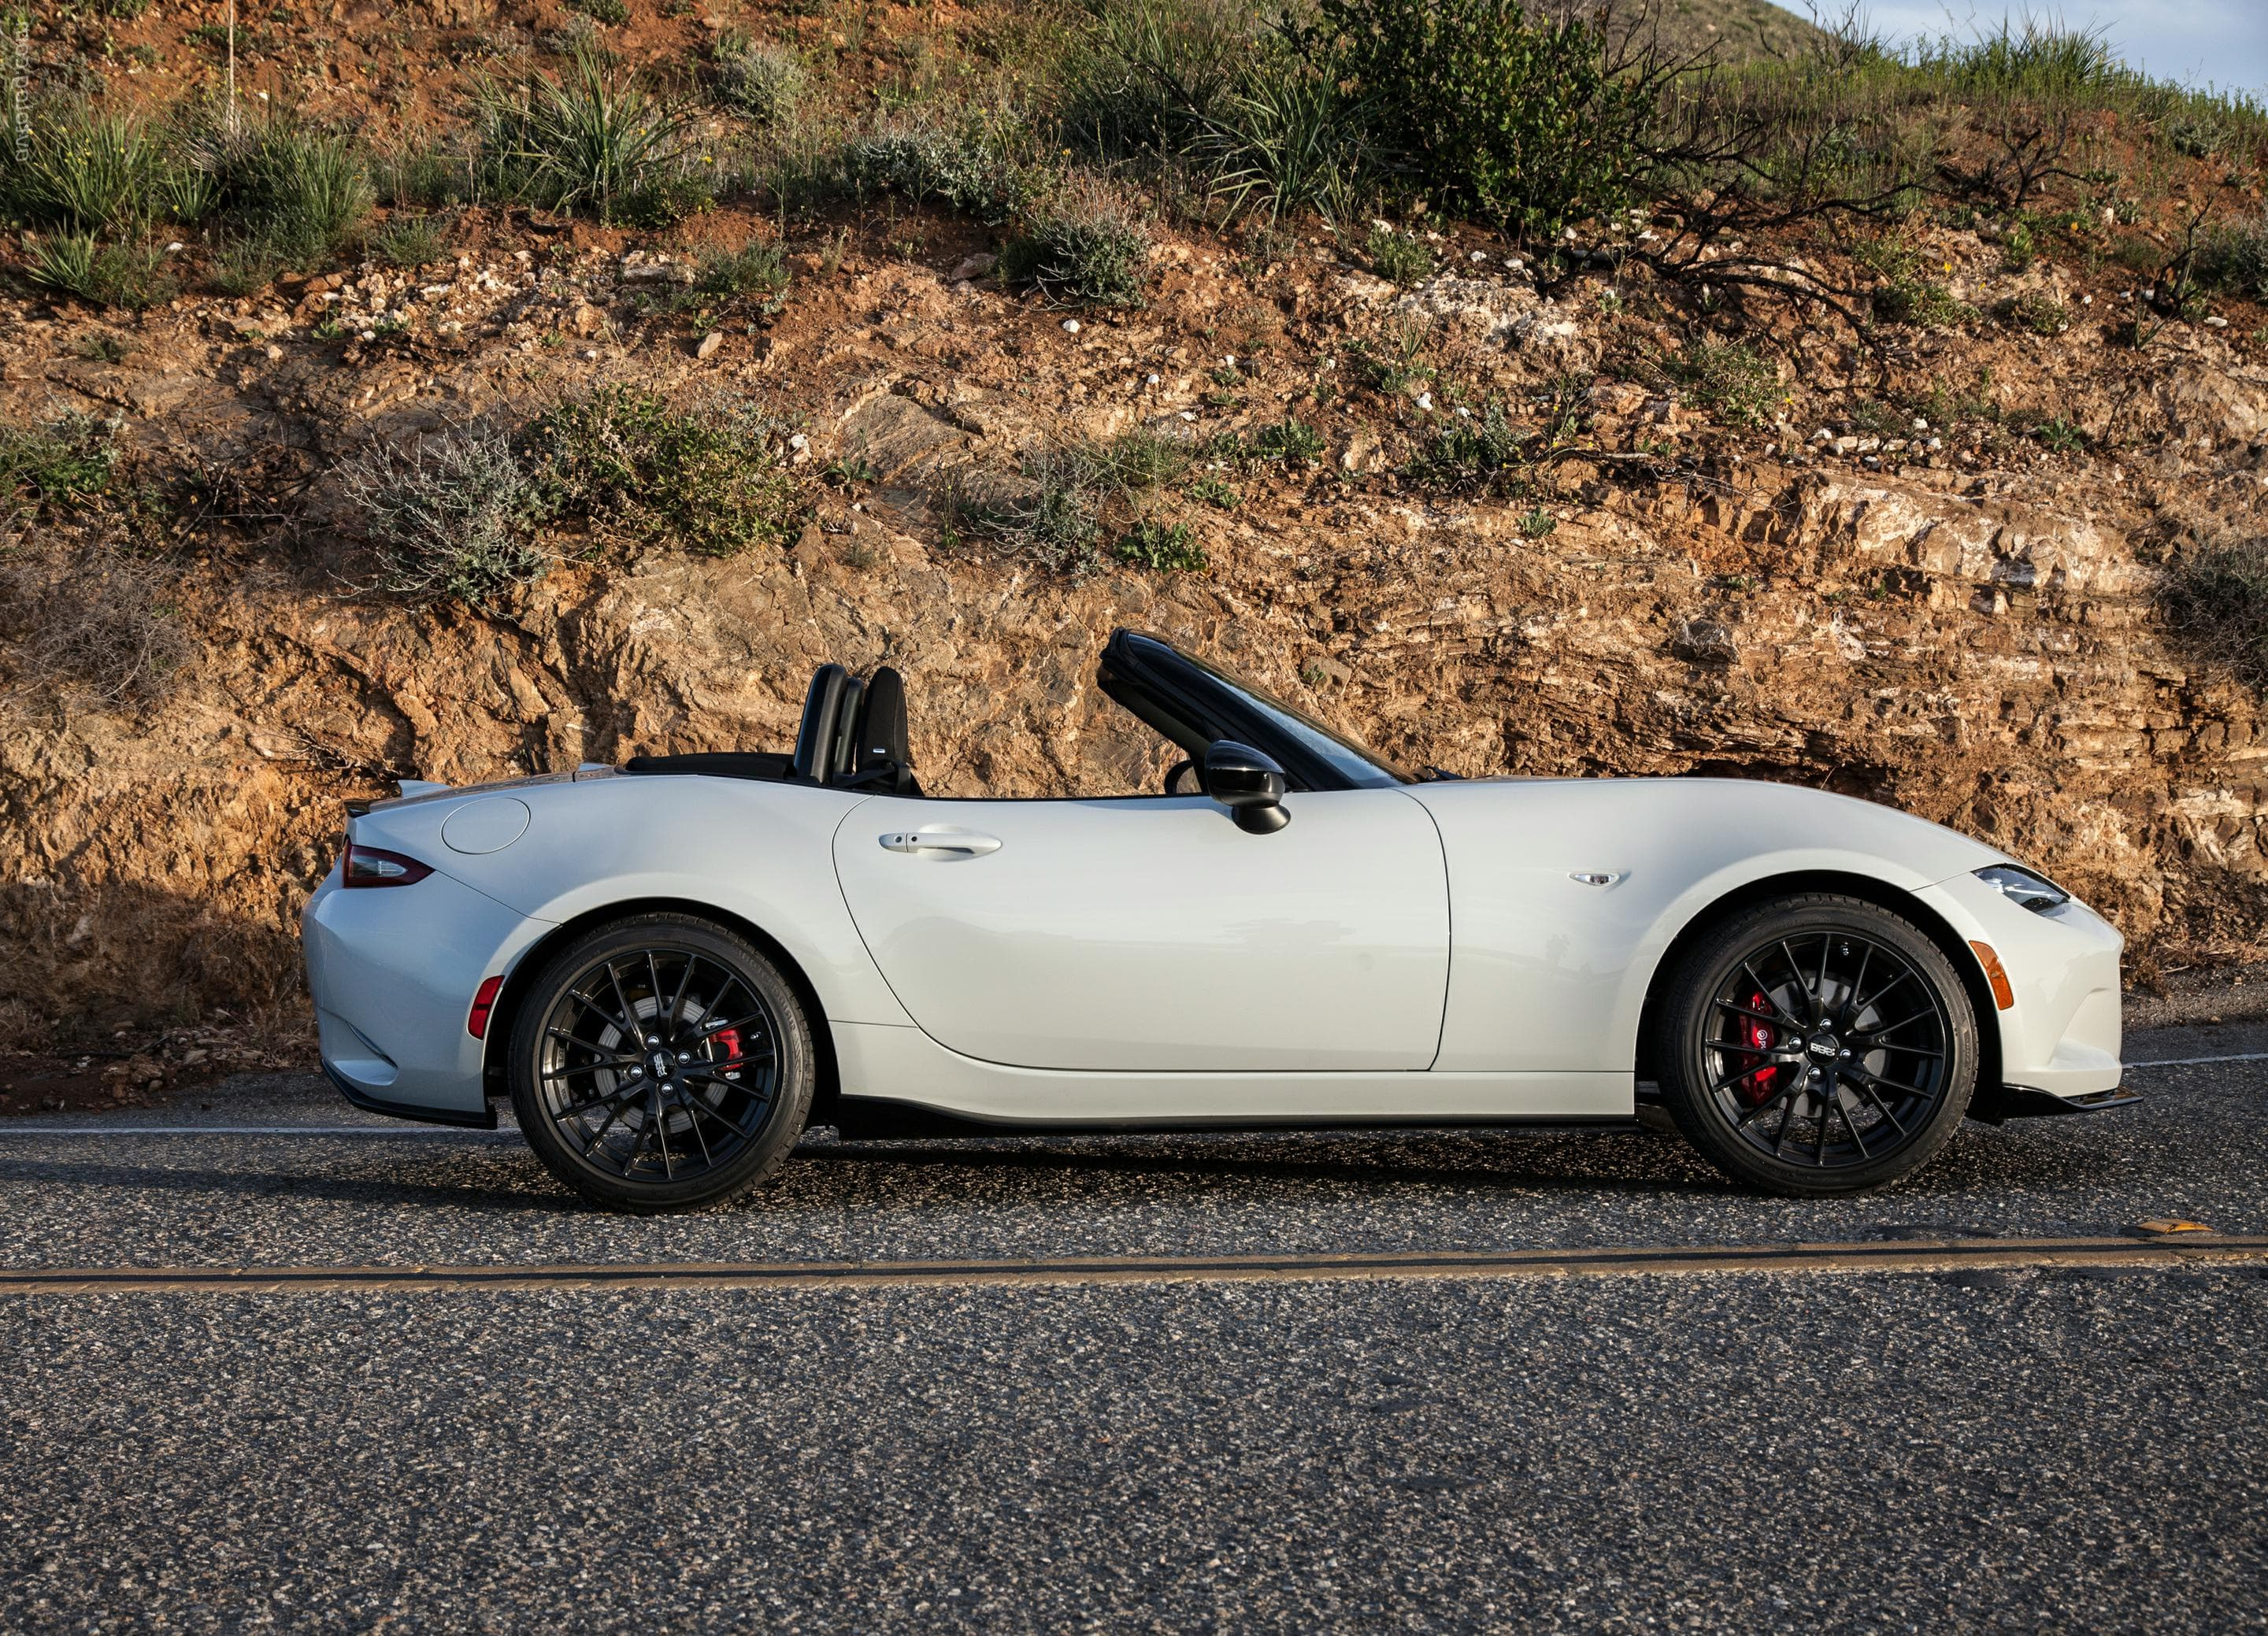 2016 Mazda MX-5 Miata side view new picture